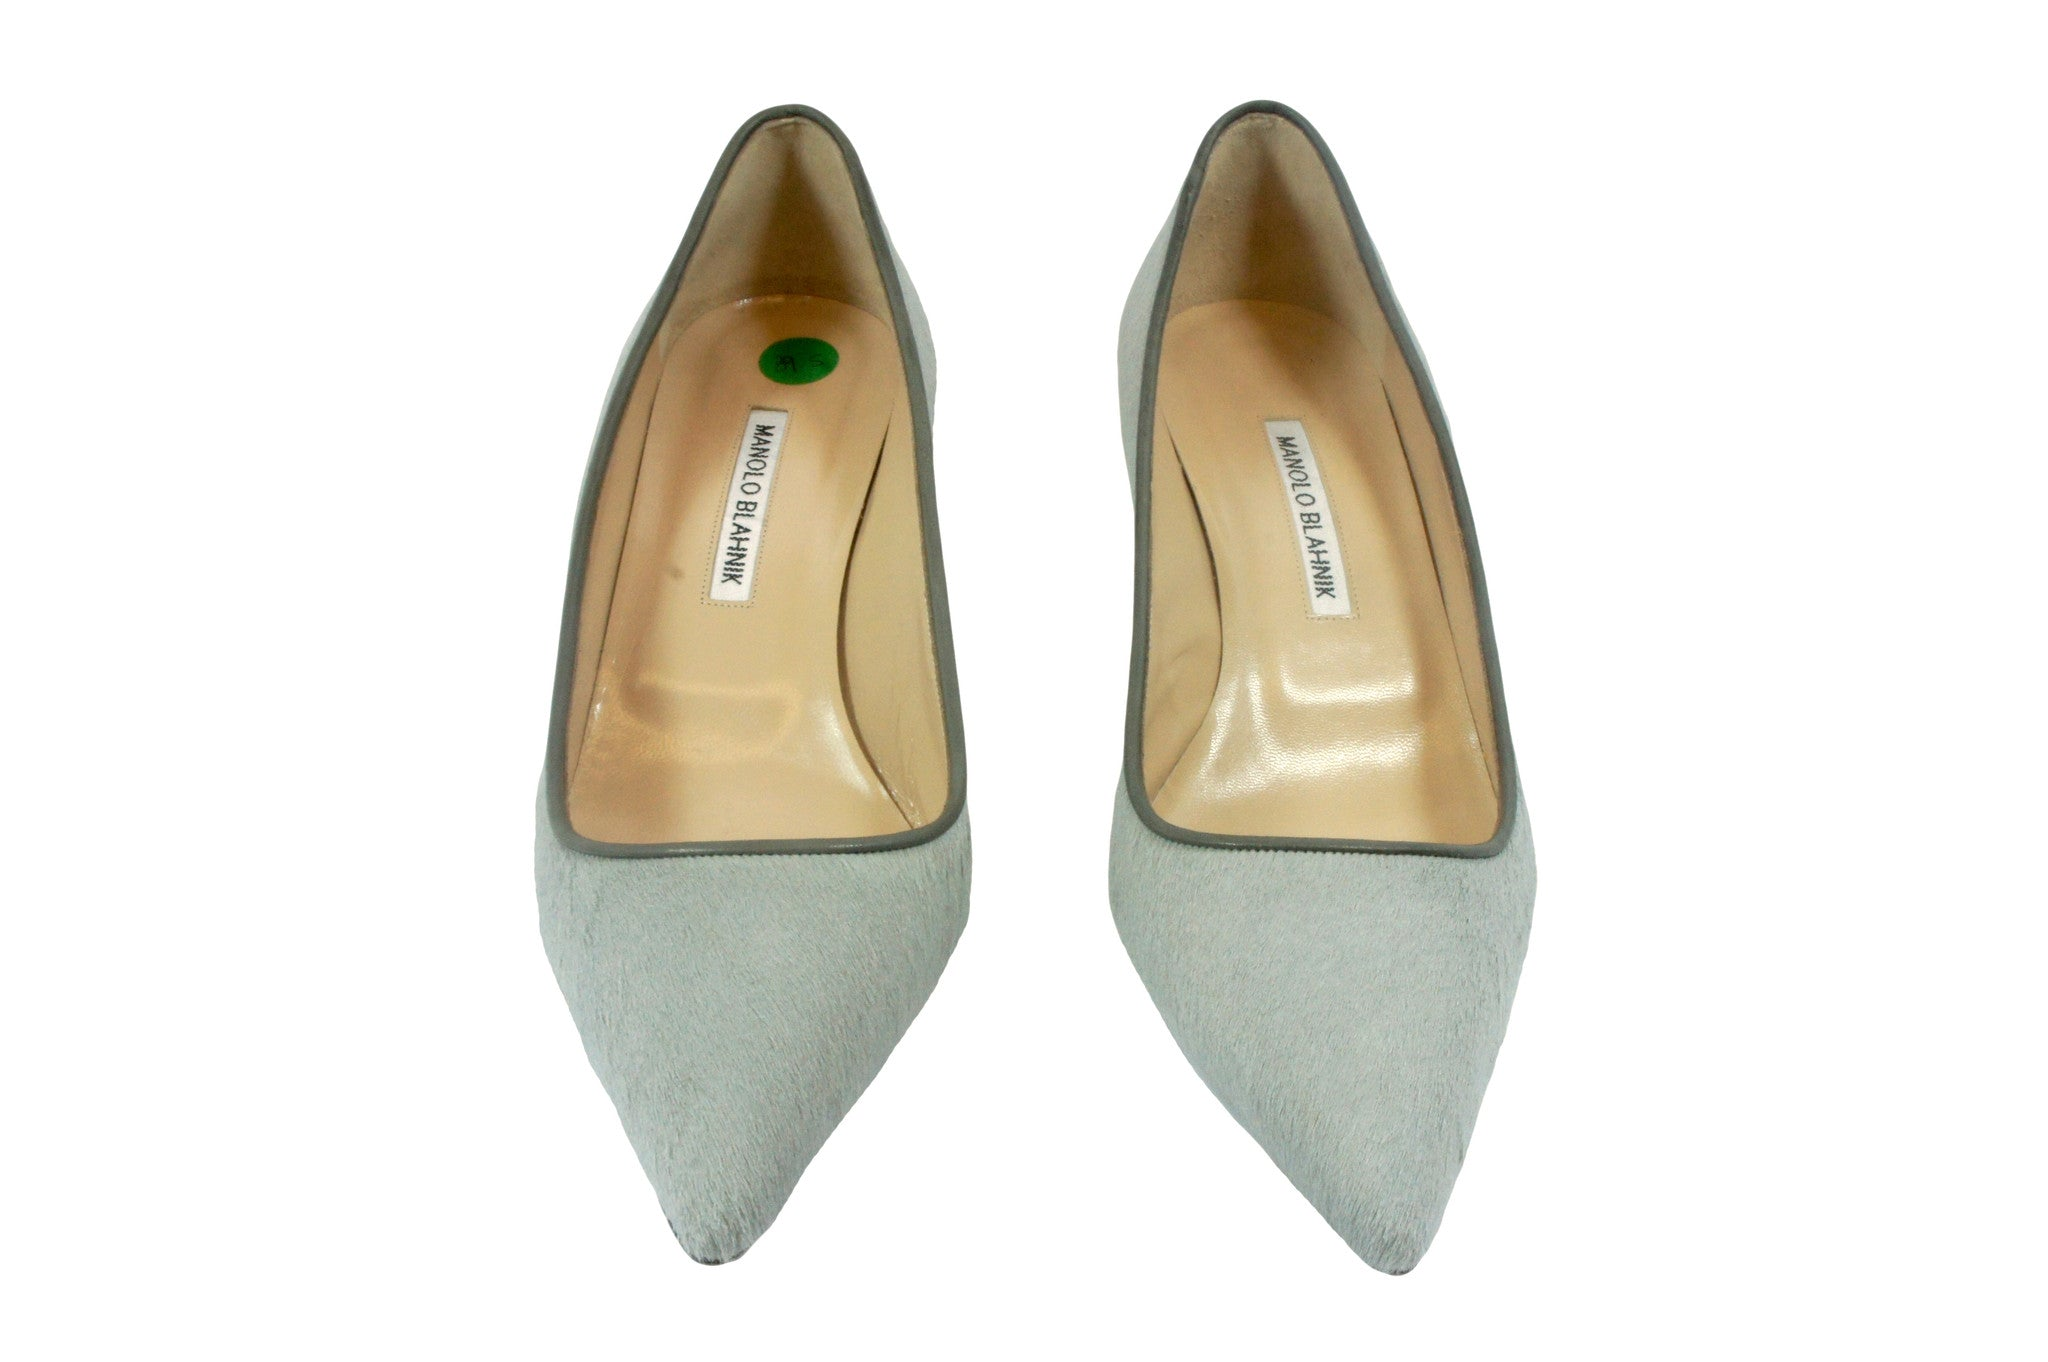 Manolo Blahnik Grey Calfhair Pumps (Size 39.5) - Encore Consignment - 1